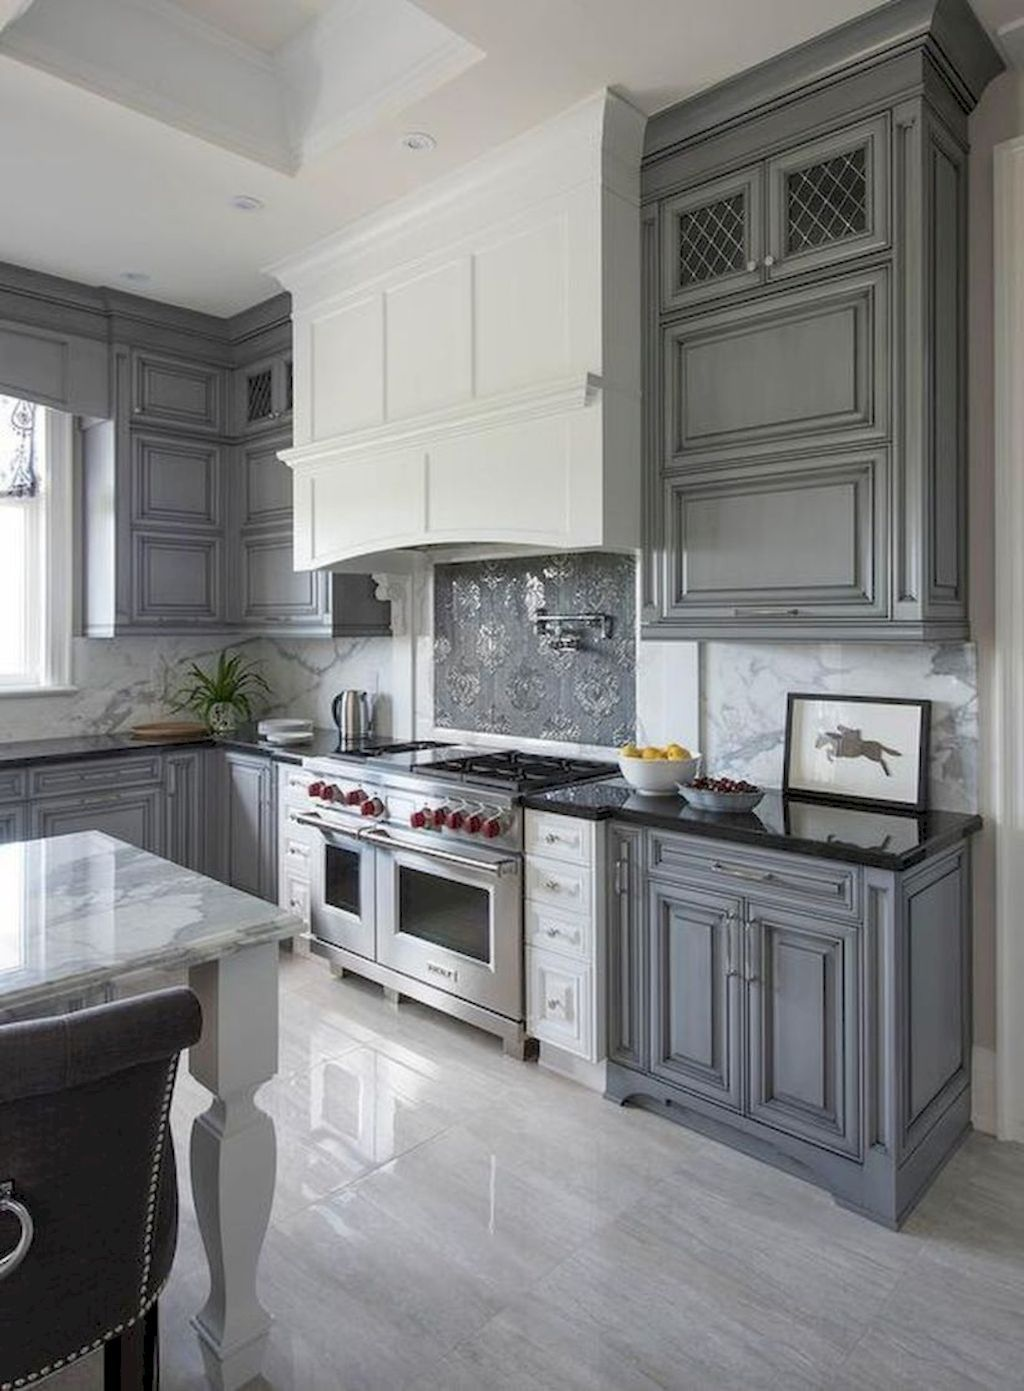 70 modern farmhouse kitchen cabinet and countertops ideas gray and white kitchen kitchen on farmhouse kitchen decor countertop id=59510